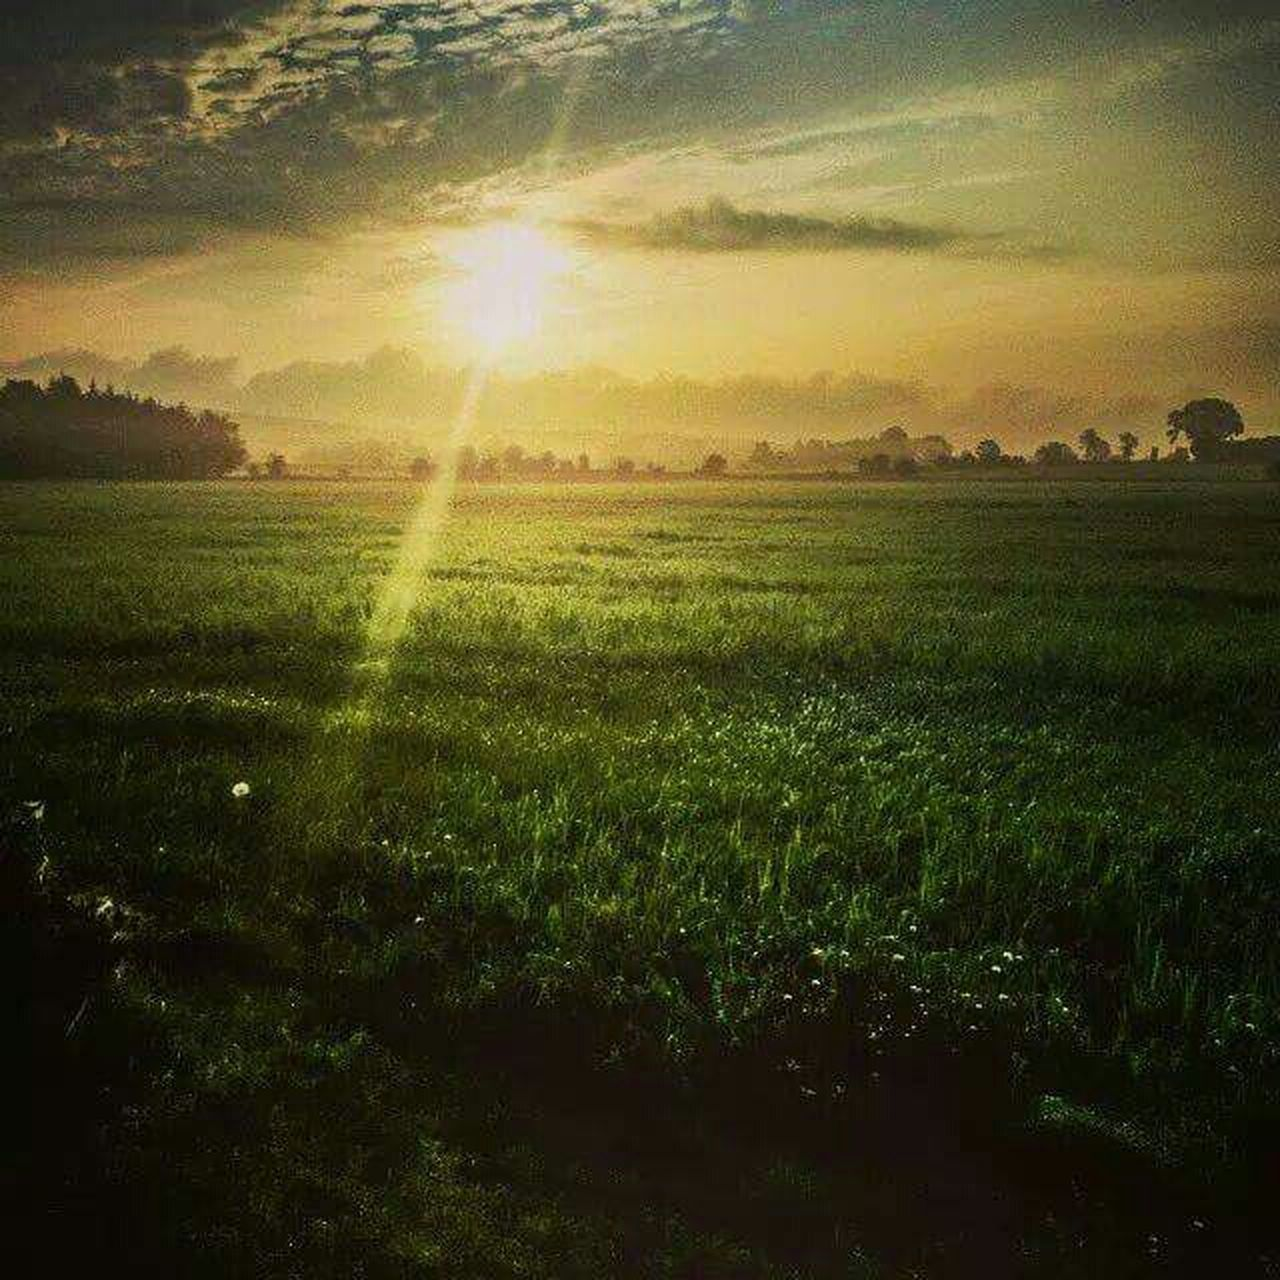 field, sunbeam, nature, sunlight, agriculture, sun, beauty in nature, landscape, tranquil scene, sunset, scenics, tranquility, growth, rural scene, no people, outdoors, grass, day, sky, freshness